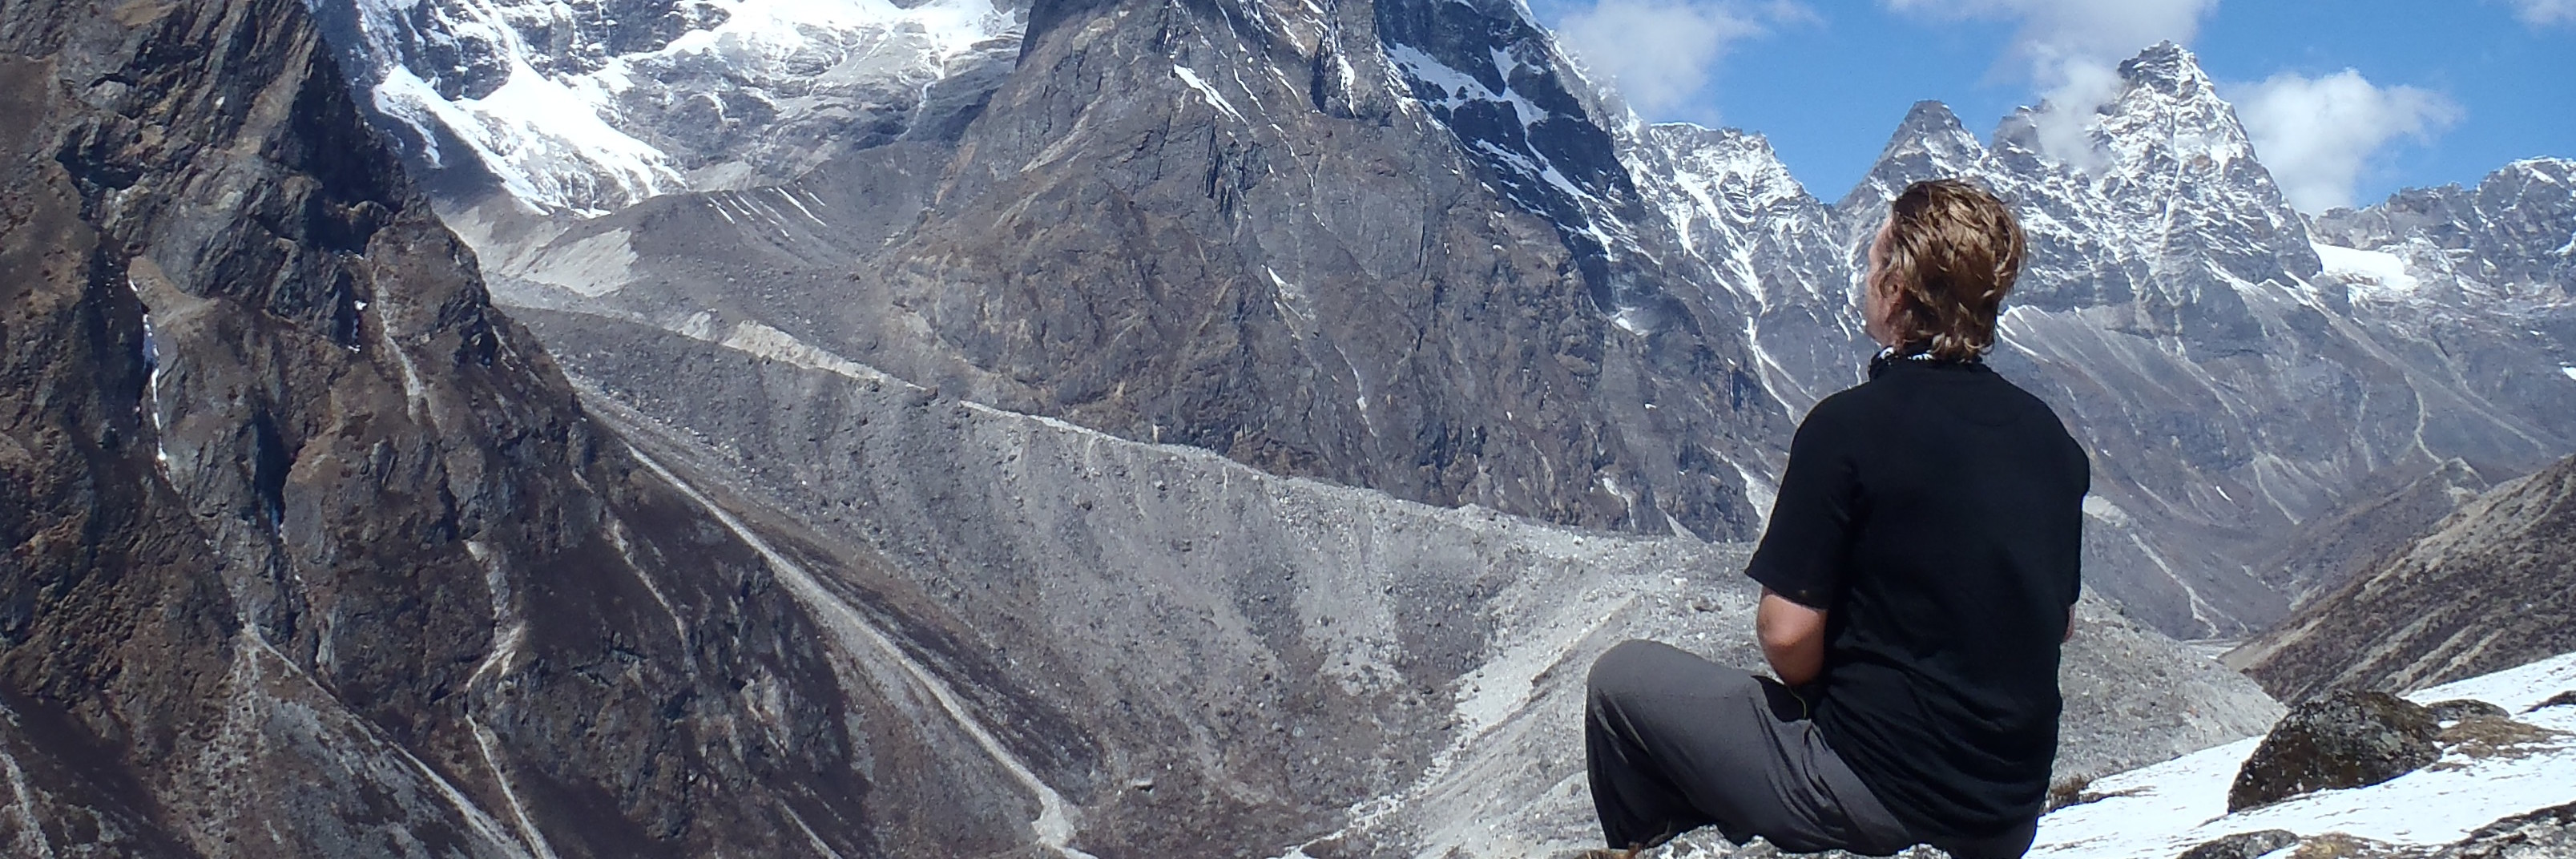 Meditating on Mt Everest